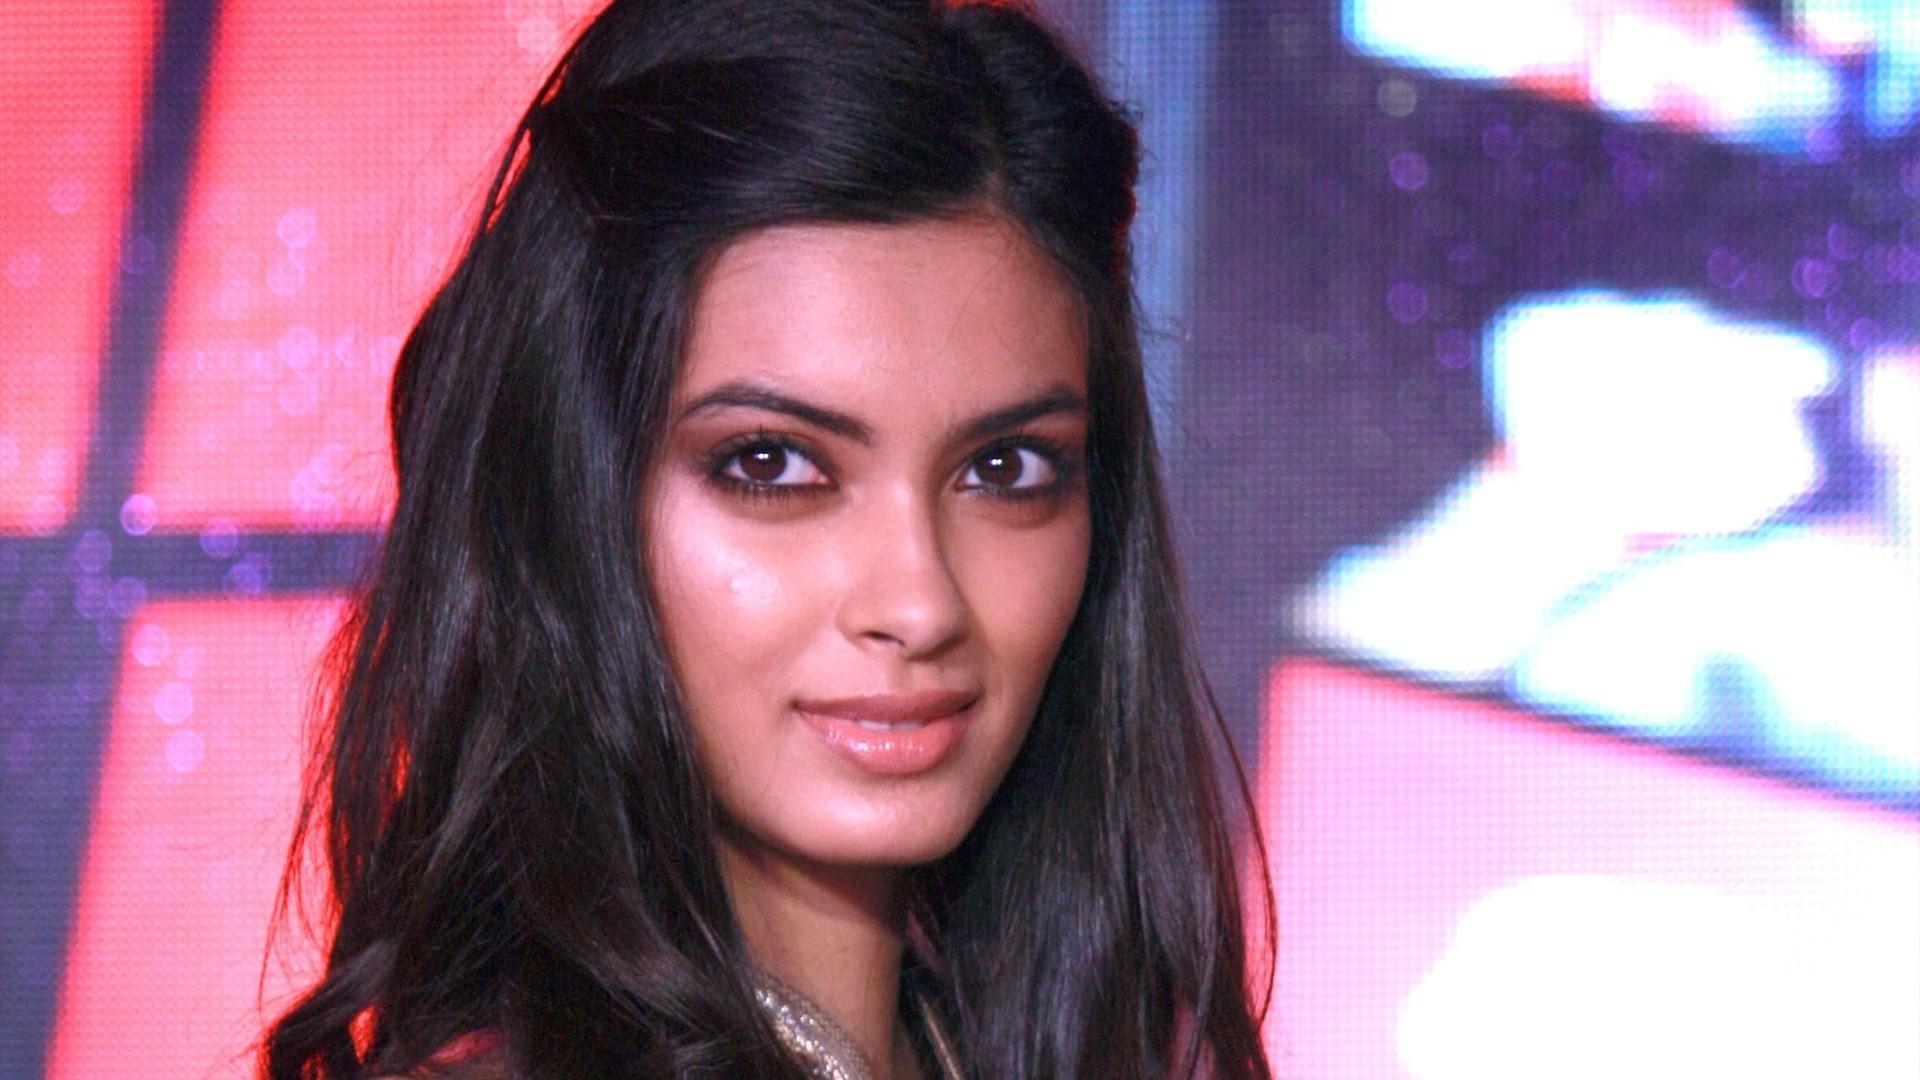 Cute Diana Penty Look Download Mobile Background Hd Pictures 1920x1080